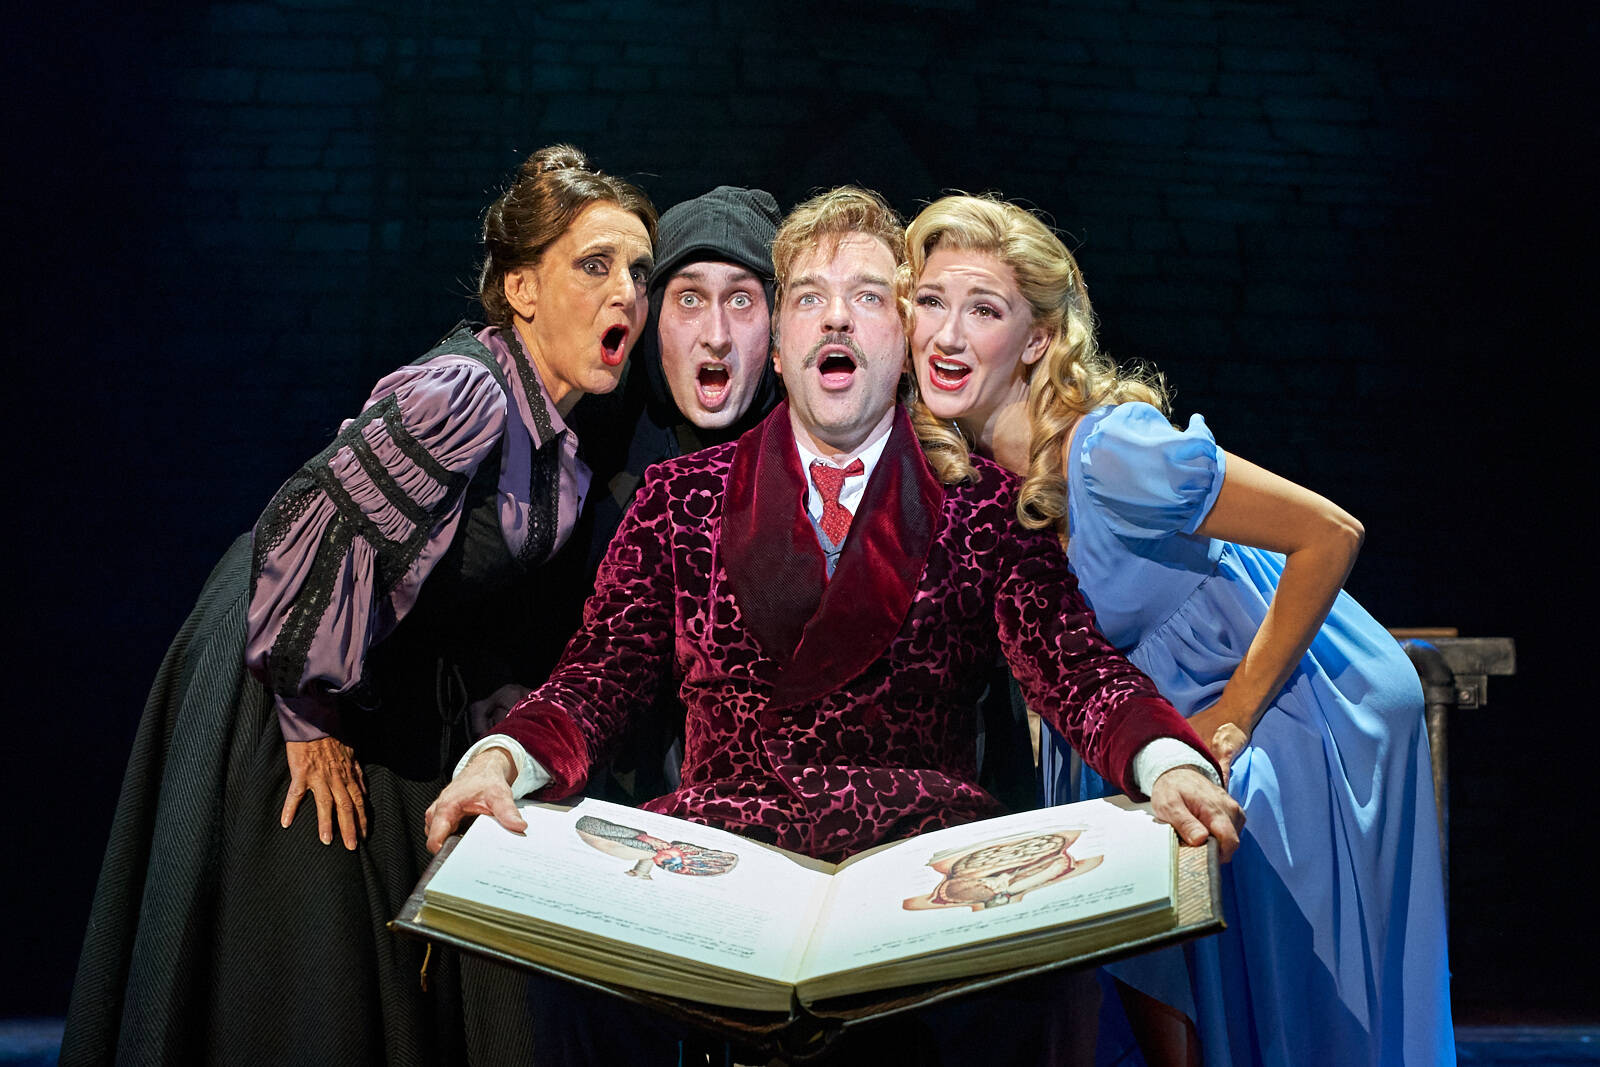 """Frau Blucher (Lesley Joseph), Igor (Ross Noble), Dr. Frankenstein (Hadley Fraser) and Inga (Summer Strallen) singing """"It Could Work"""". They sing around a science book called HOW I DID IT!"""